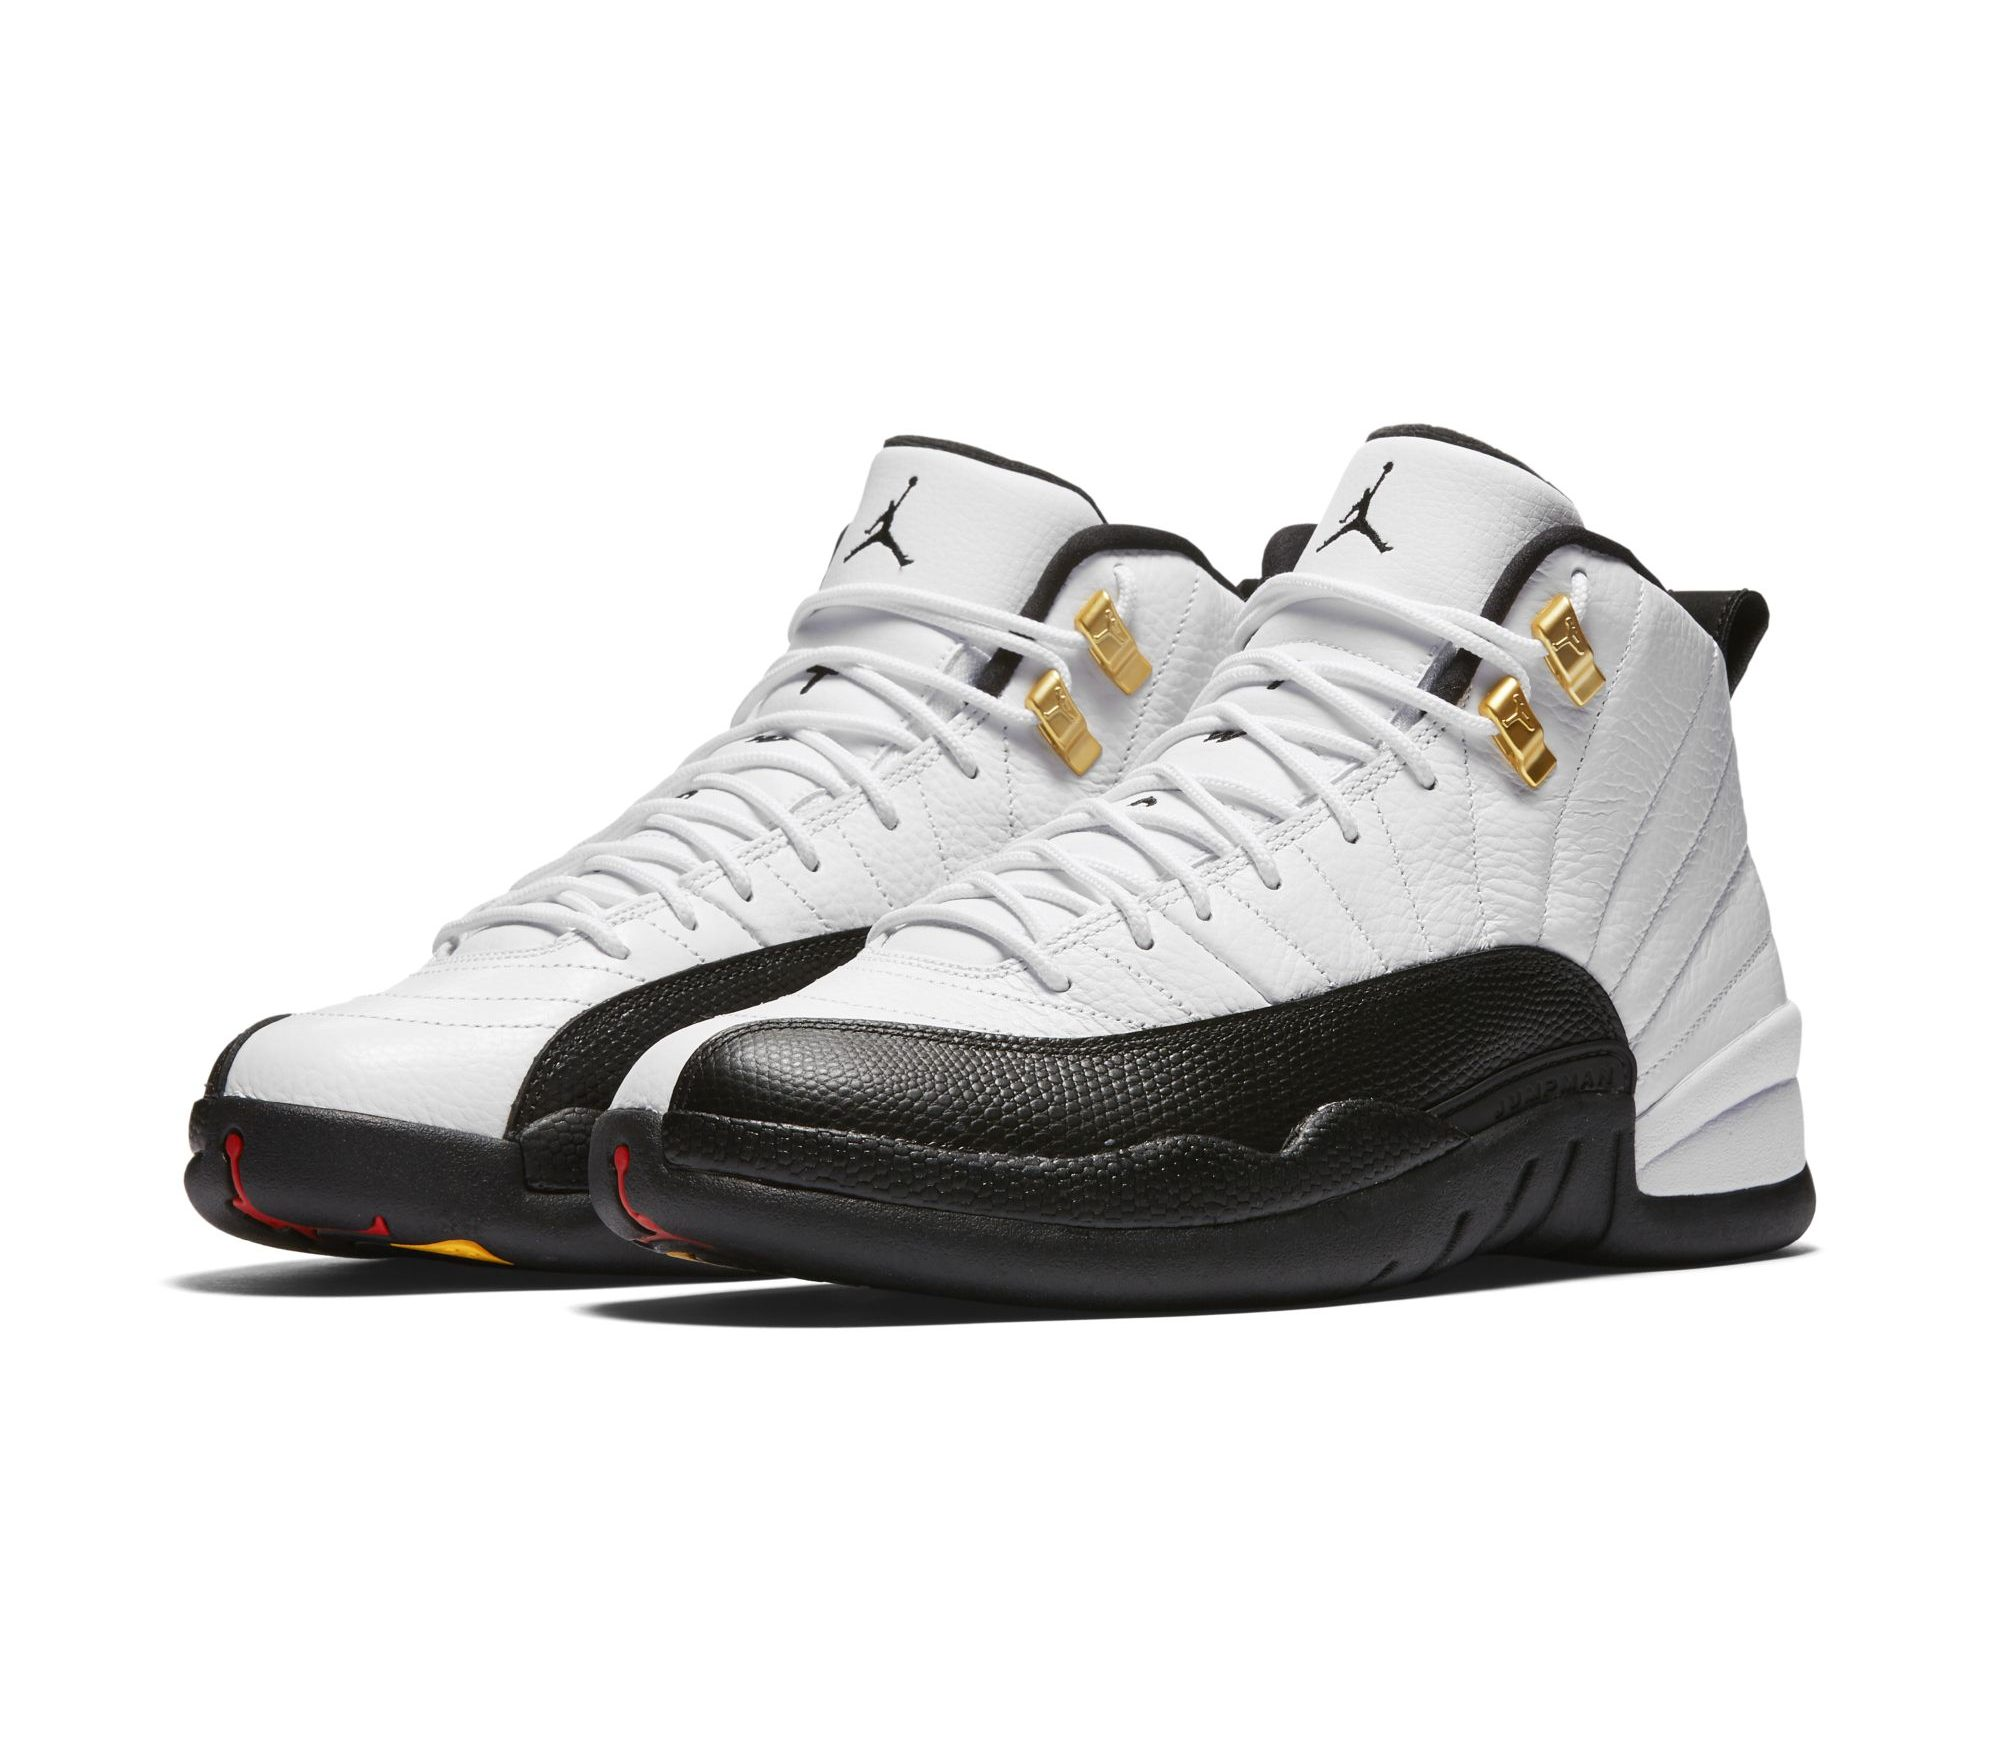 43db4064a31 purchase air jordan 12 retro pink 028b5 c36a4; sweden air jordan 12 taxi  2018 5502c d5798